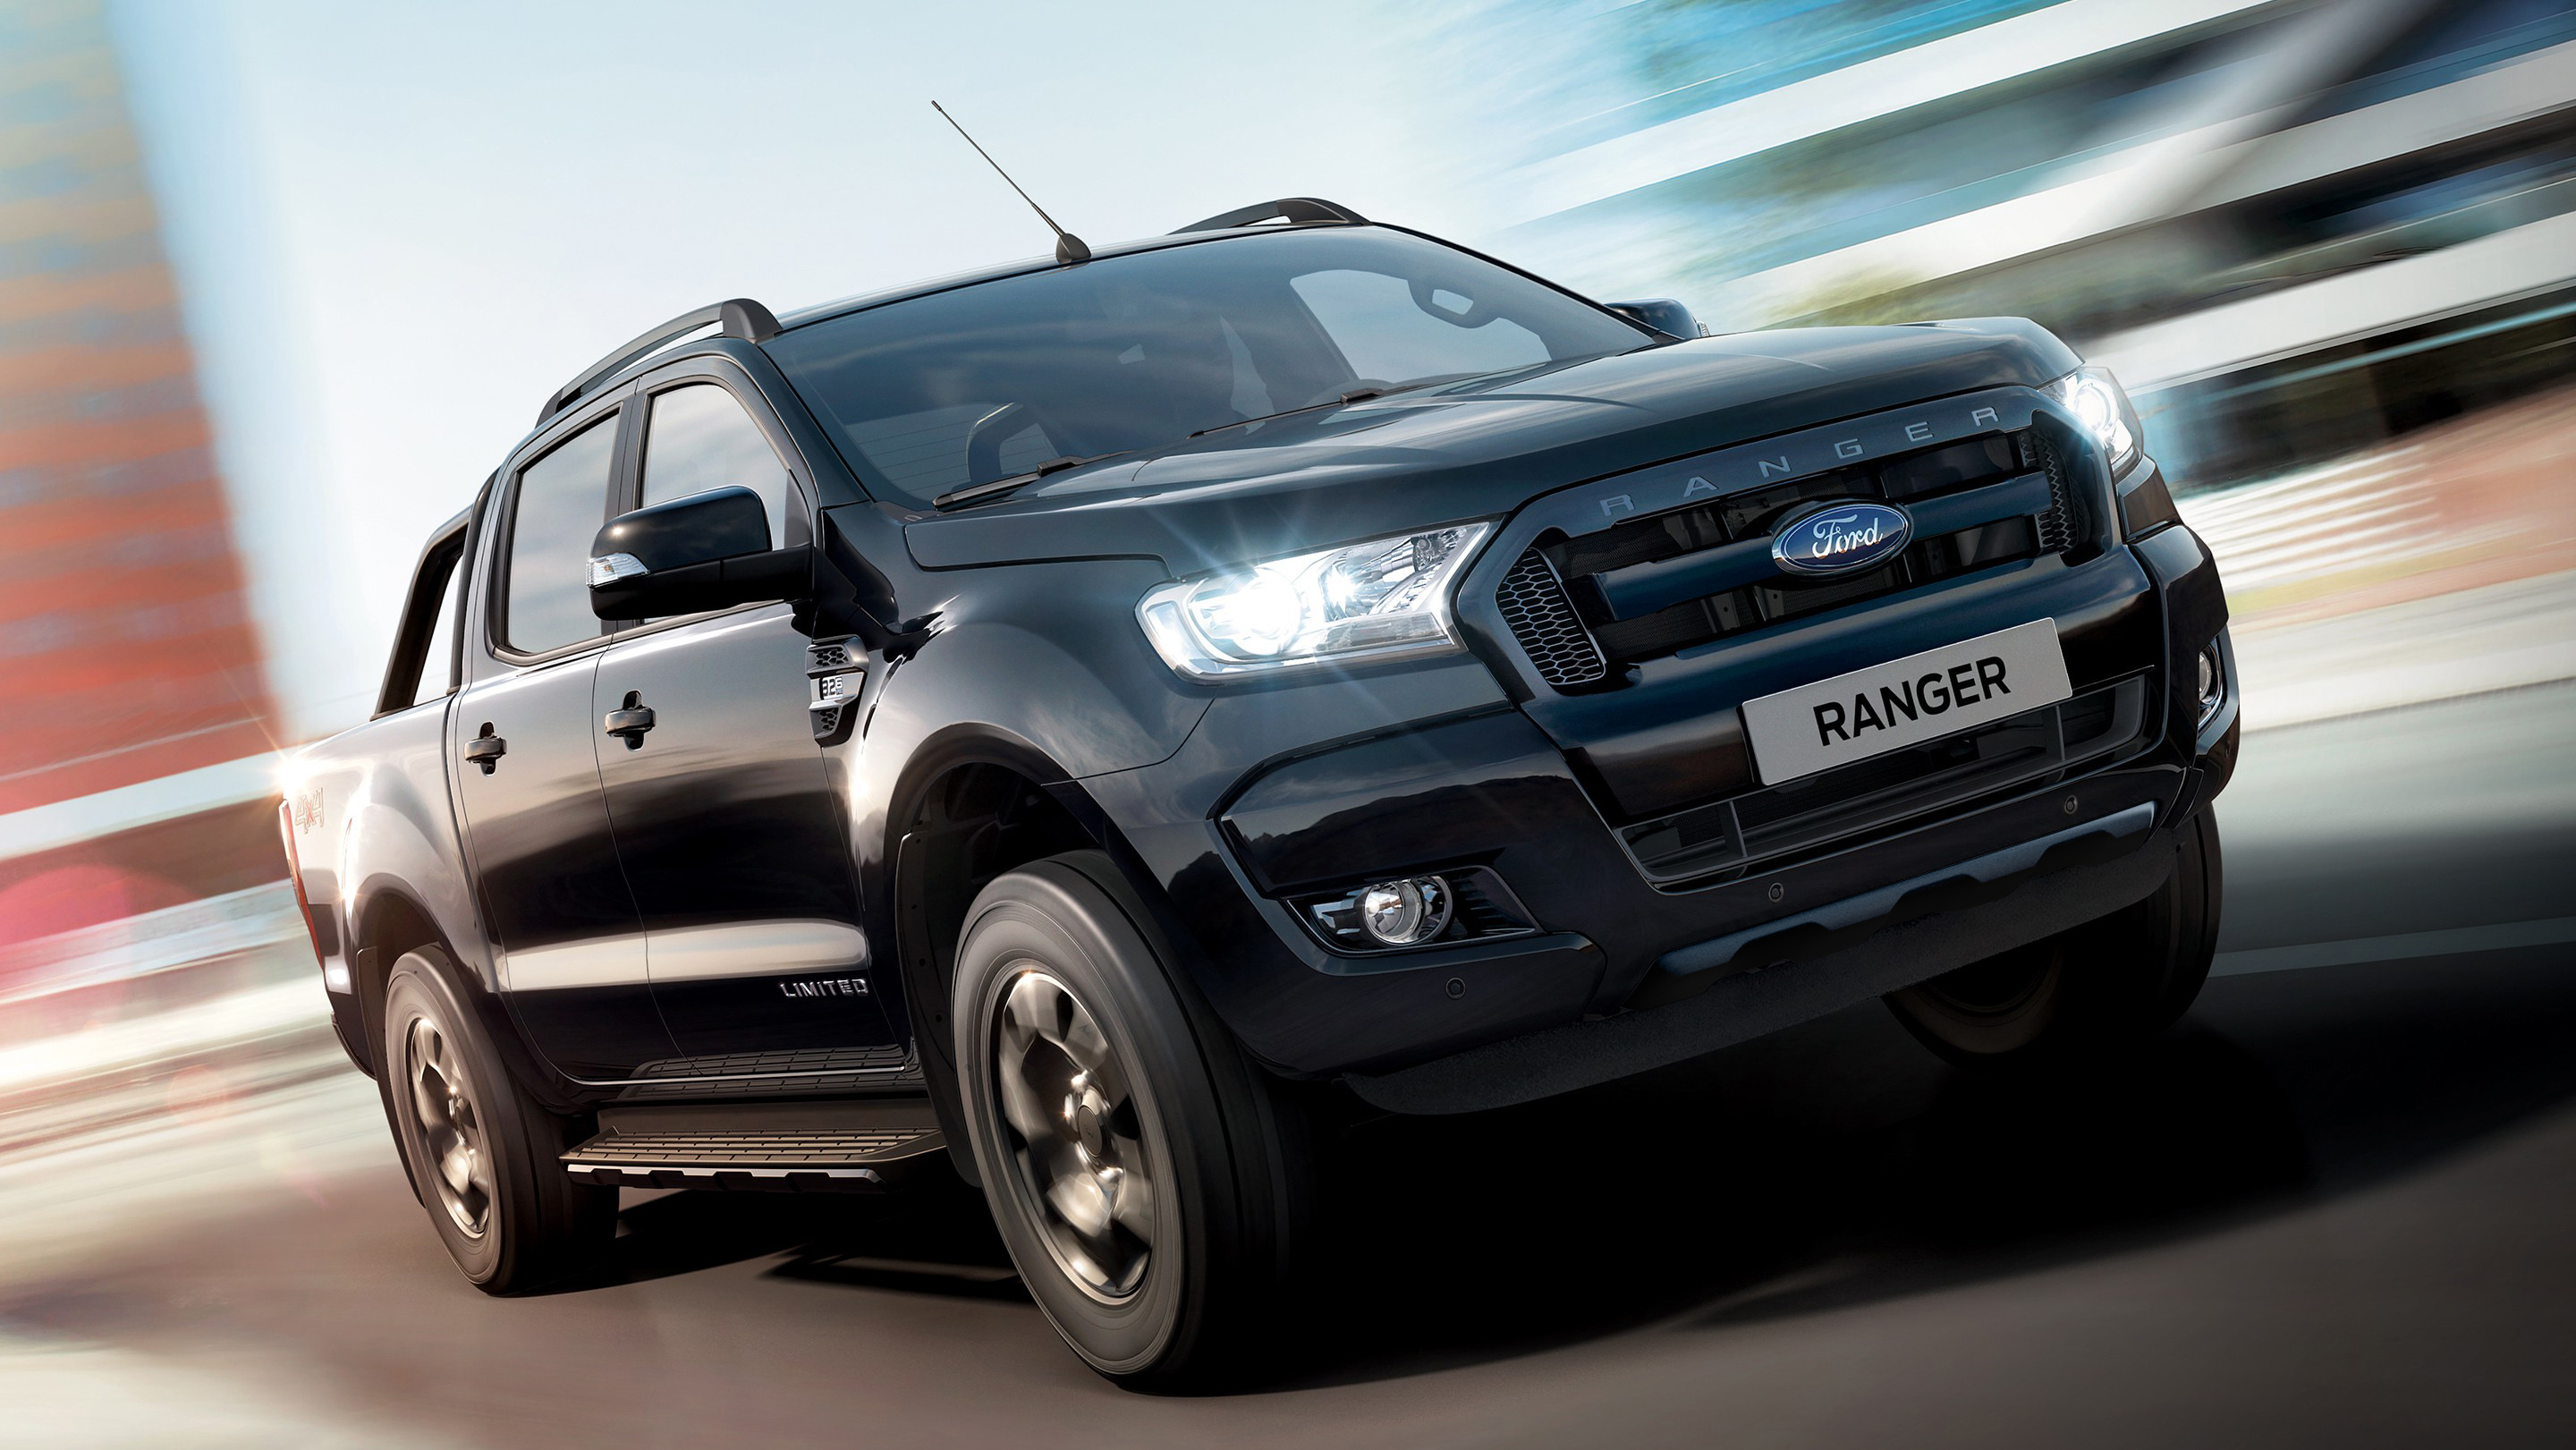 RANGER BLACK EDITION (5)